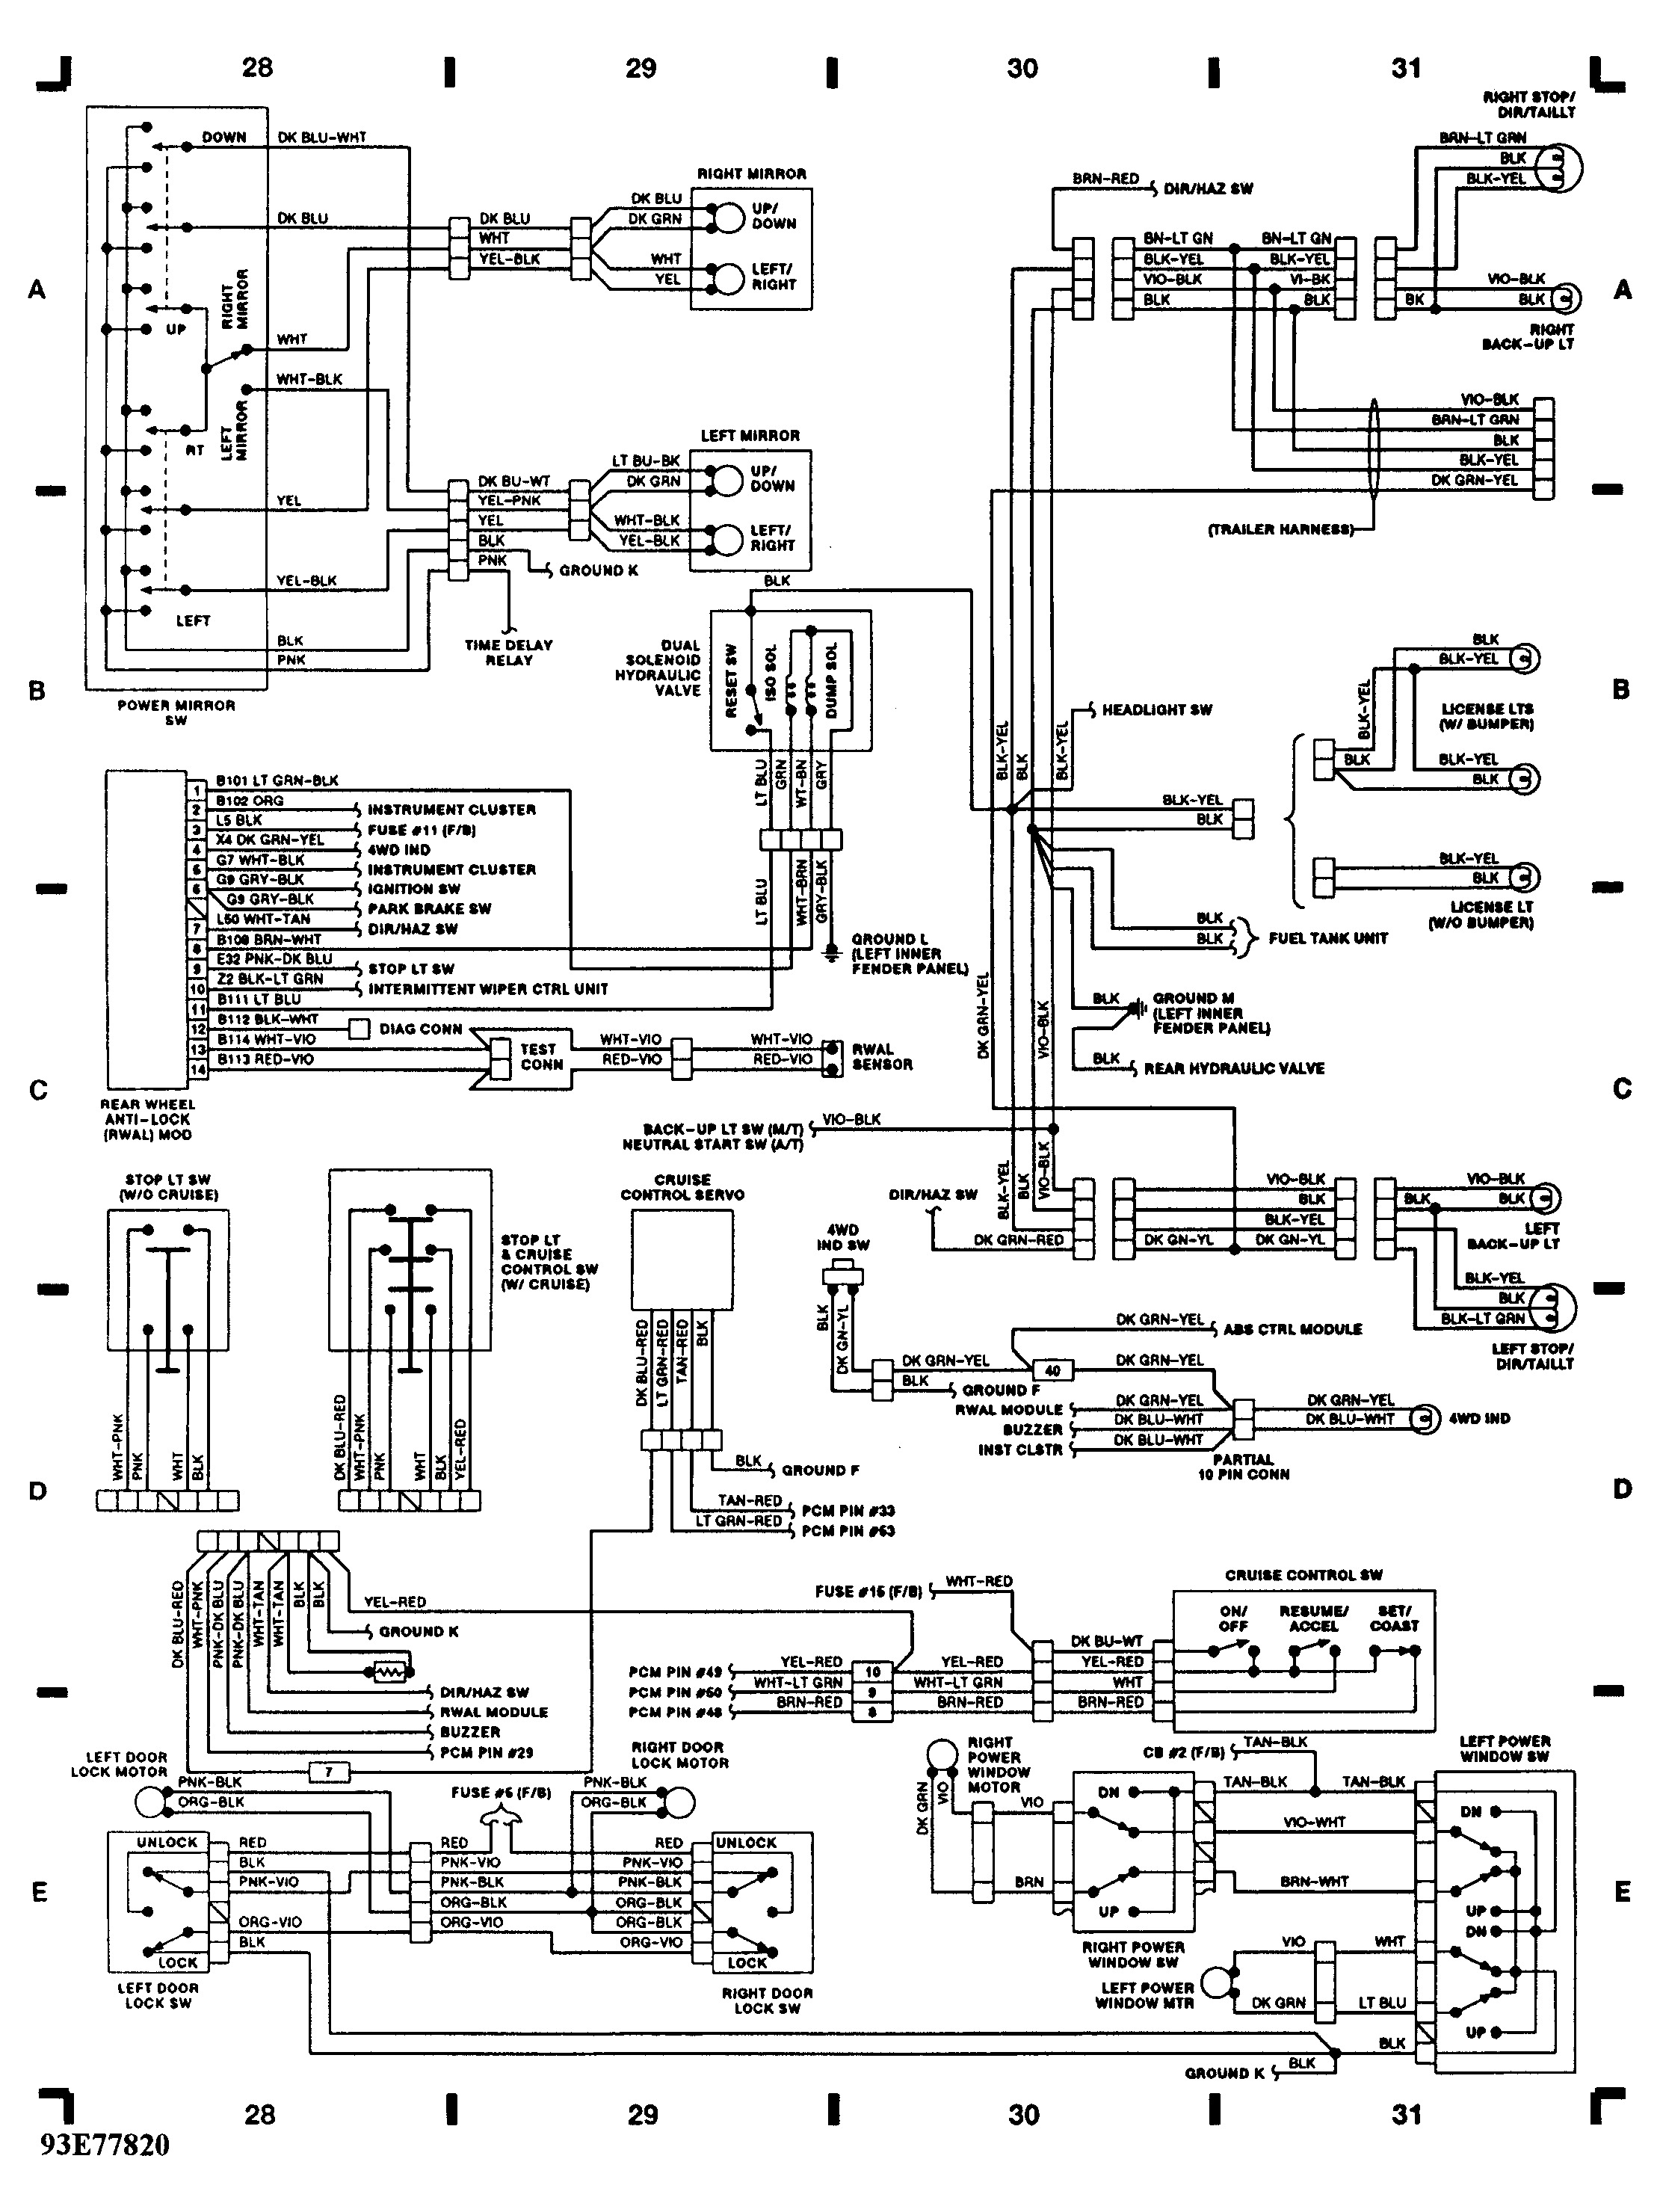 99 Chevy Silverado Taillight Wiring Diagram 2000 Western